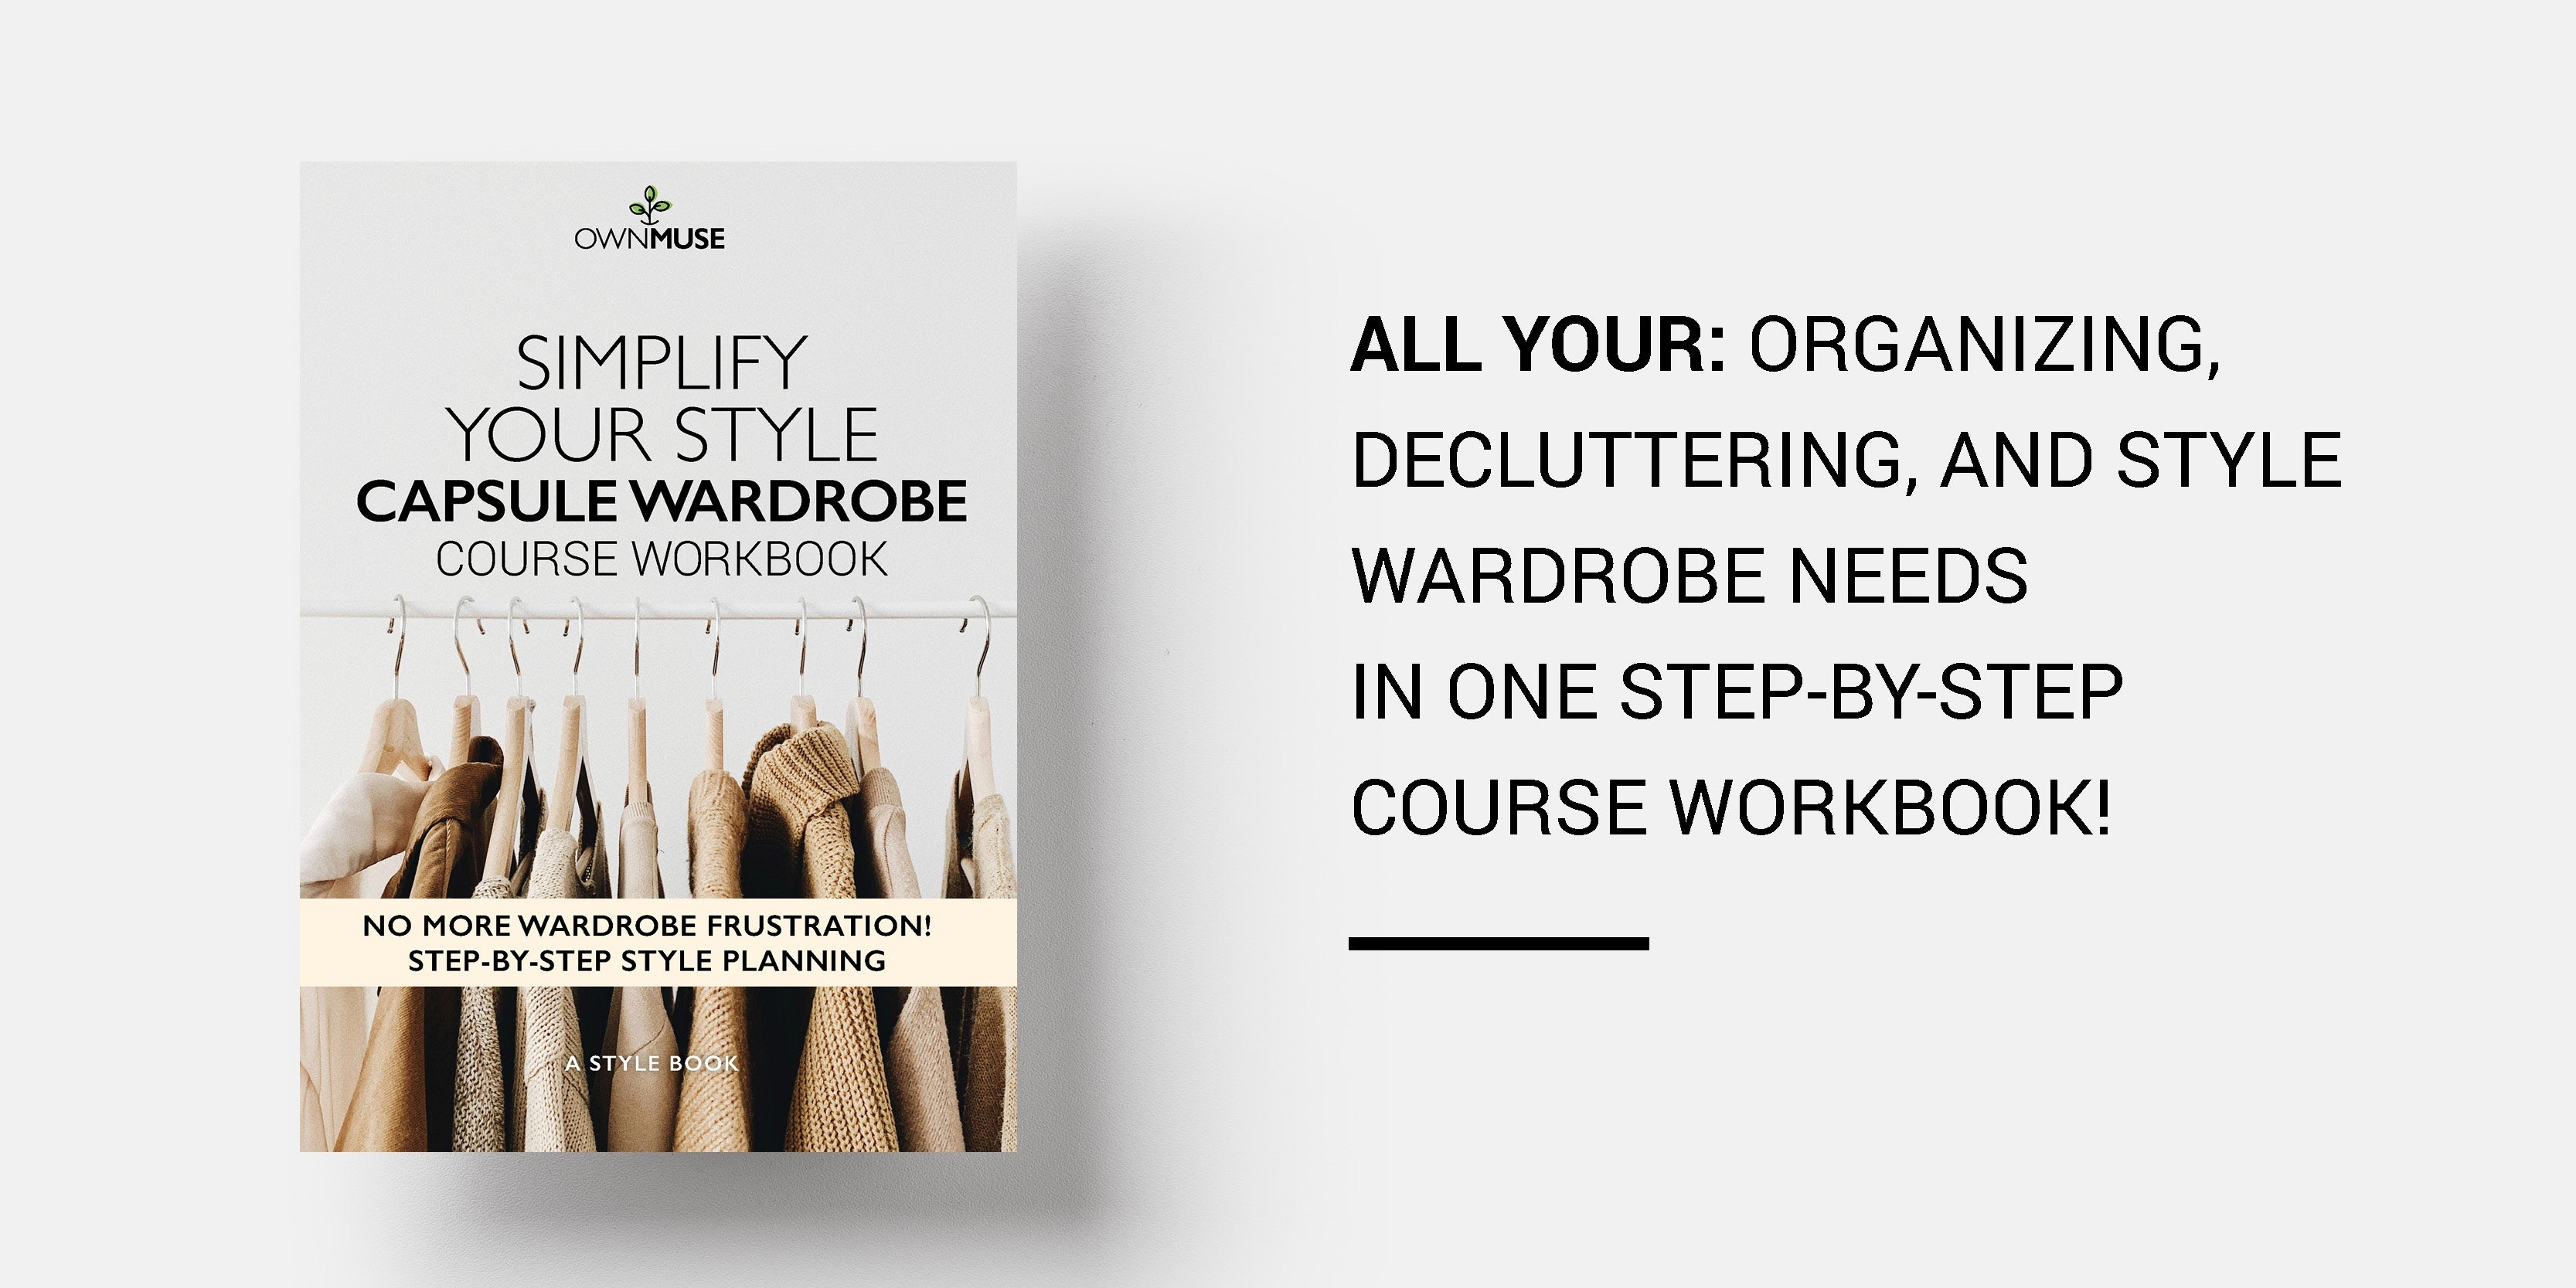 All your: organizing,  decluttering, and style wardrobe needs  in one step-by-step course workbook!